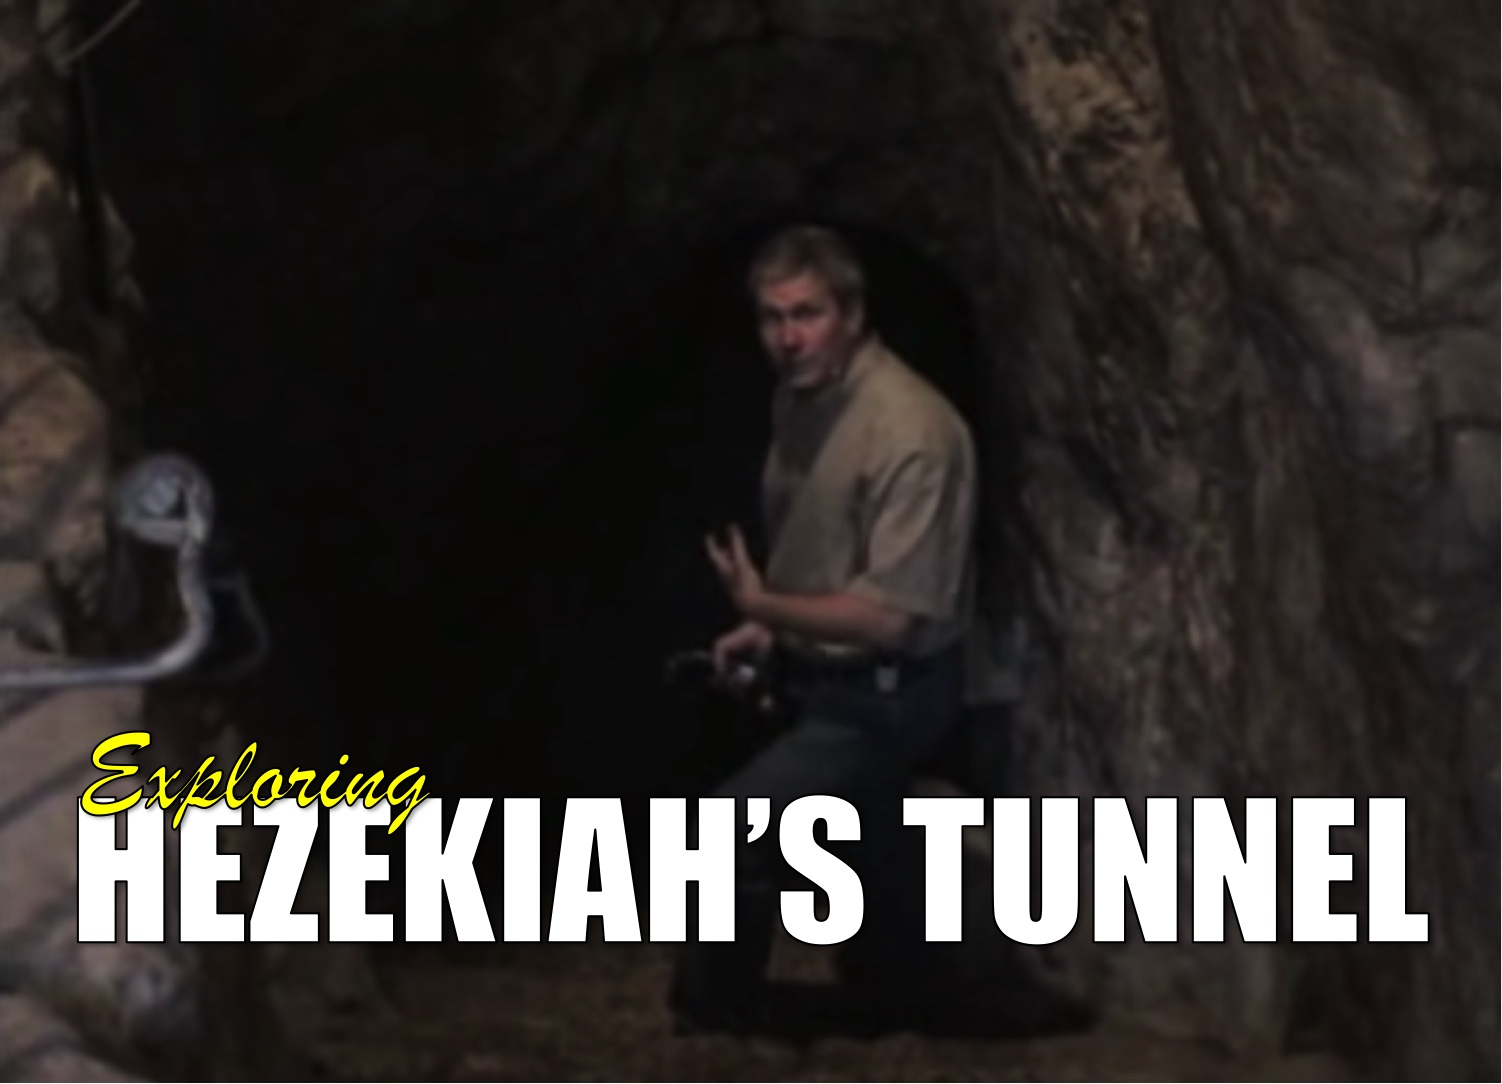 Exploring Hezekiah Tunnel